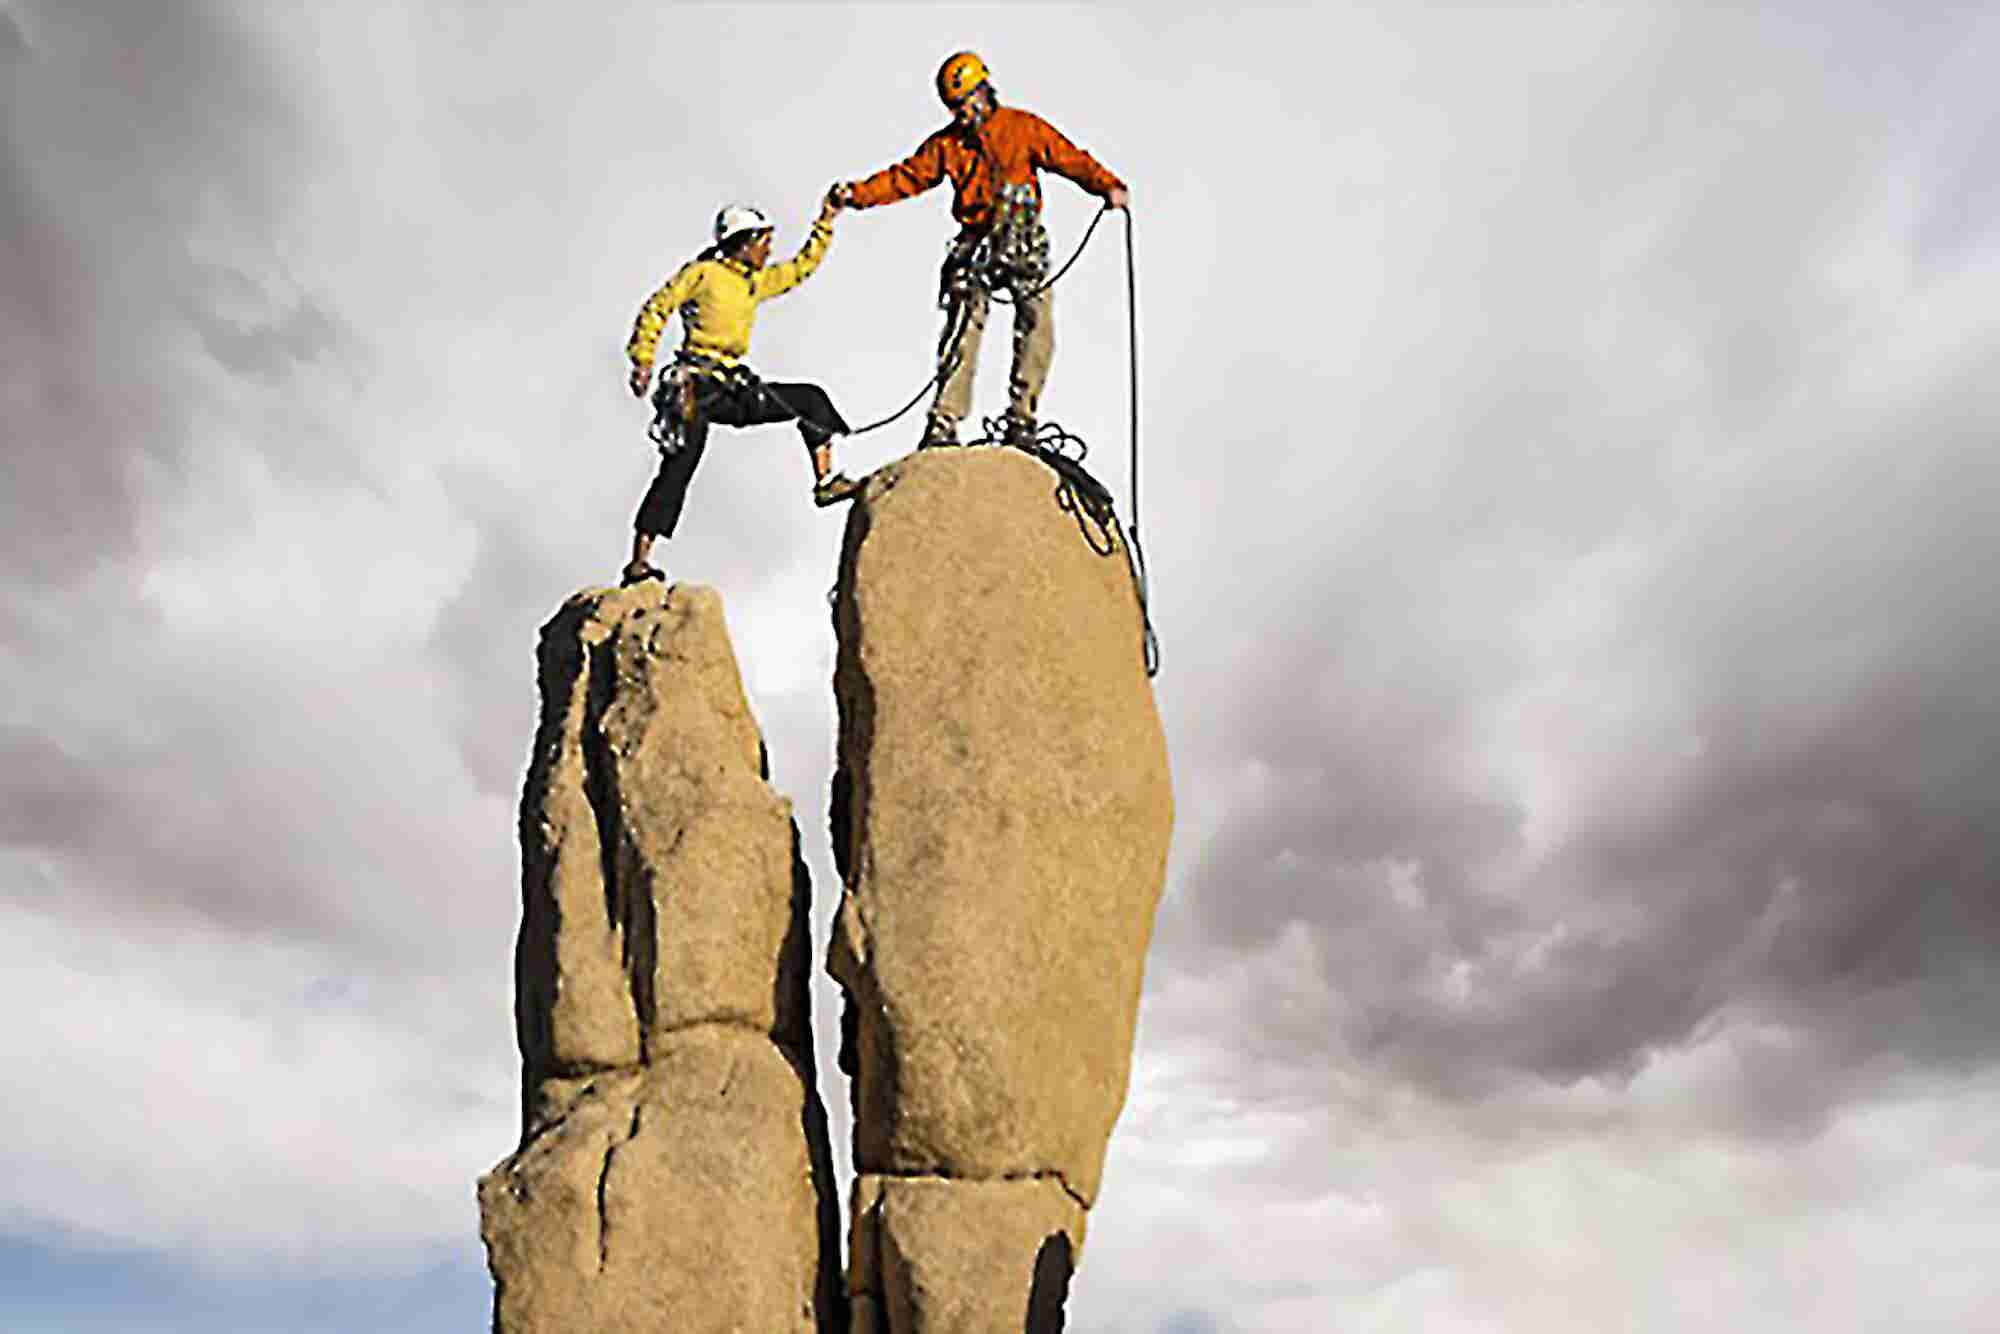 8 Critical Considerations for Choosing the Right Business Partner